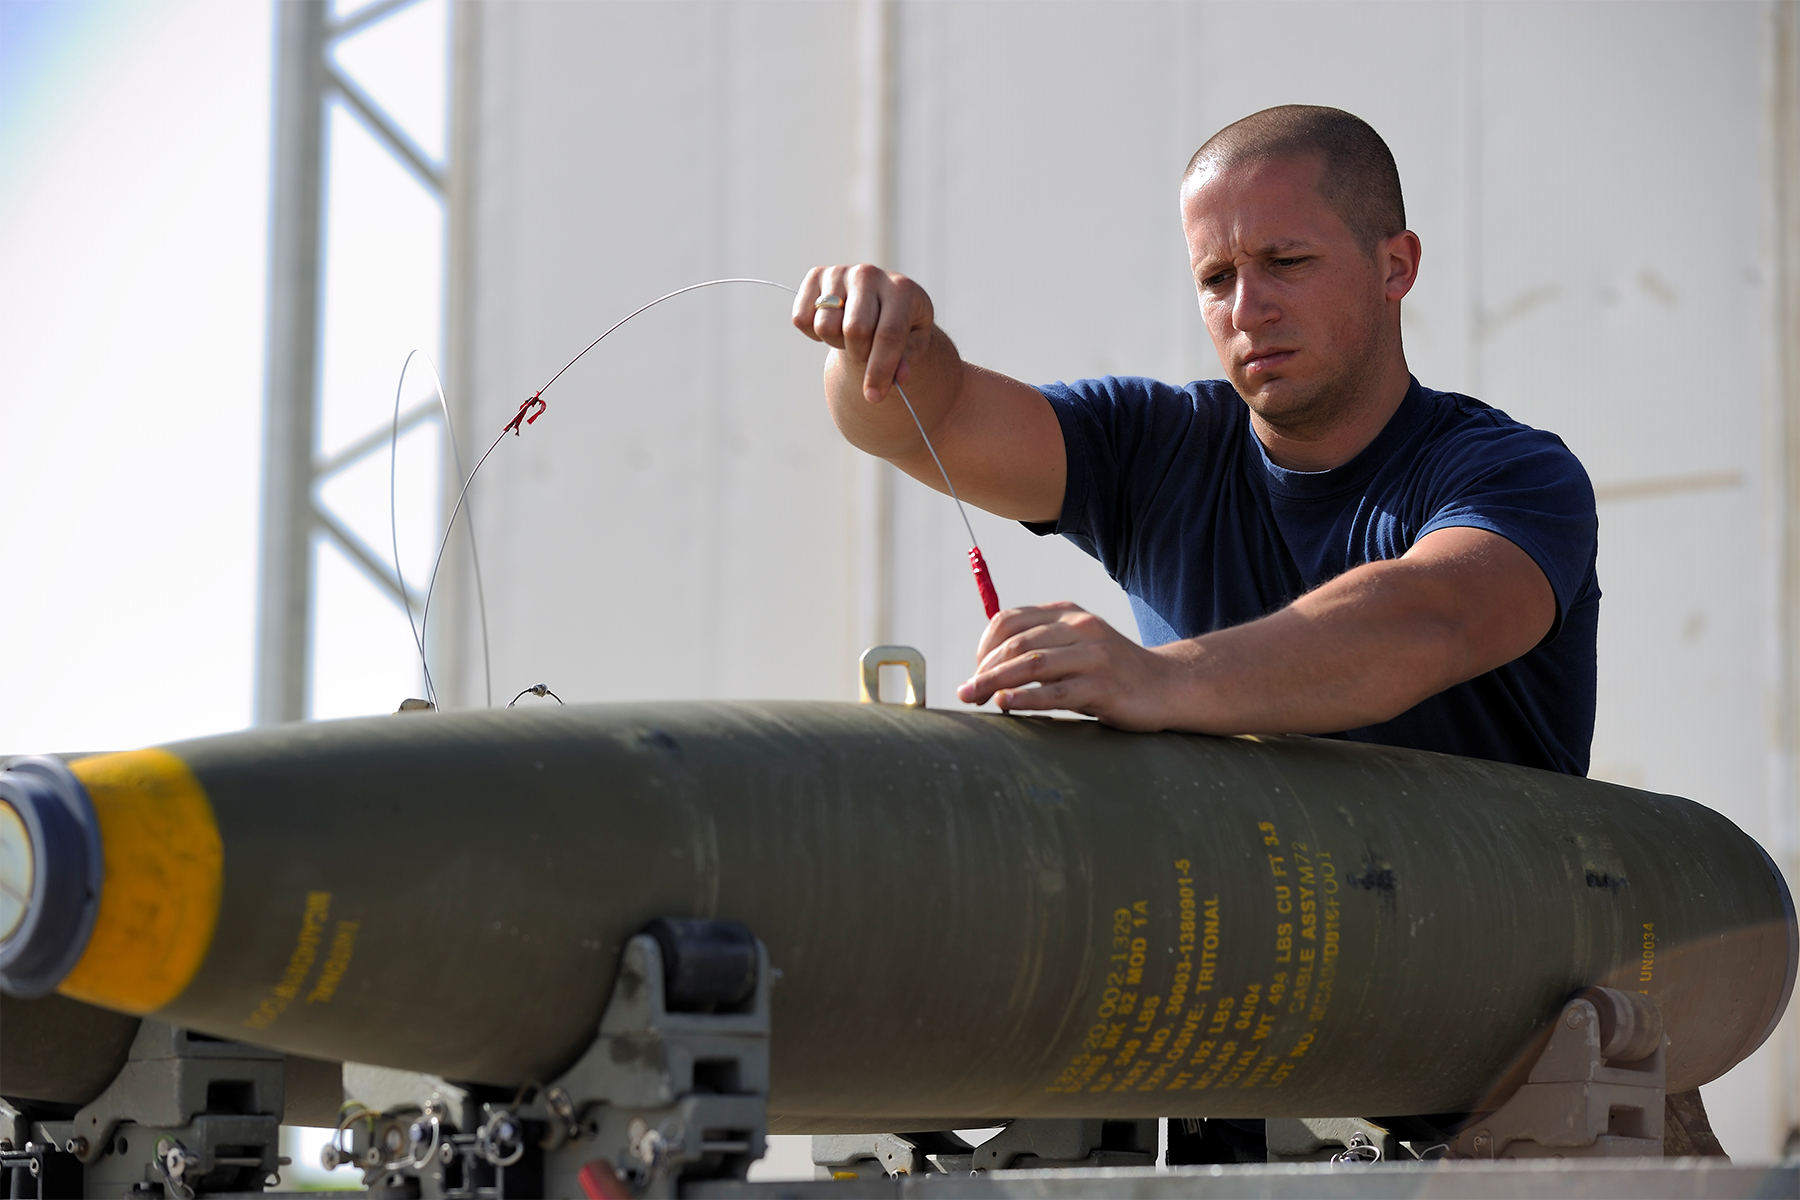 An air weapons technician from 3 Wing, Bagotville, Québec's 425 Tactical Fighter Squadron assembles a laser-guided GBU-12 bomb in Trapani, Italy, on April 4, 2011. PHOTO: Corporal Marc-André Gaudreault, IS2011-6002-1364